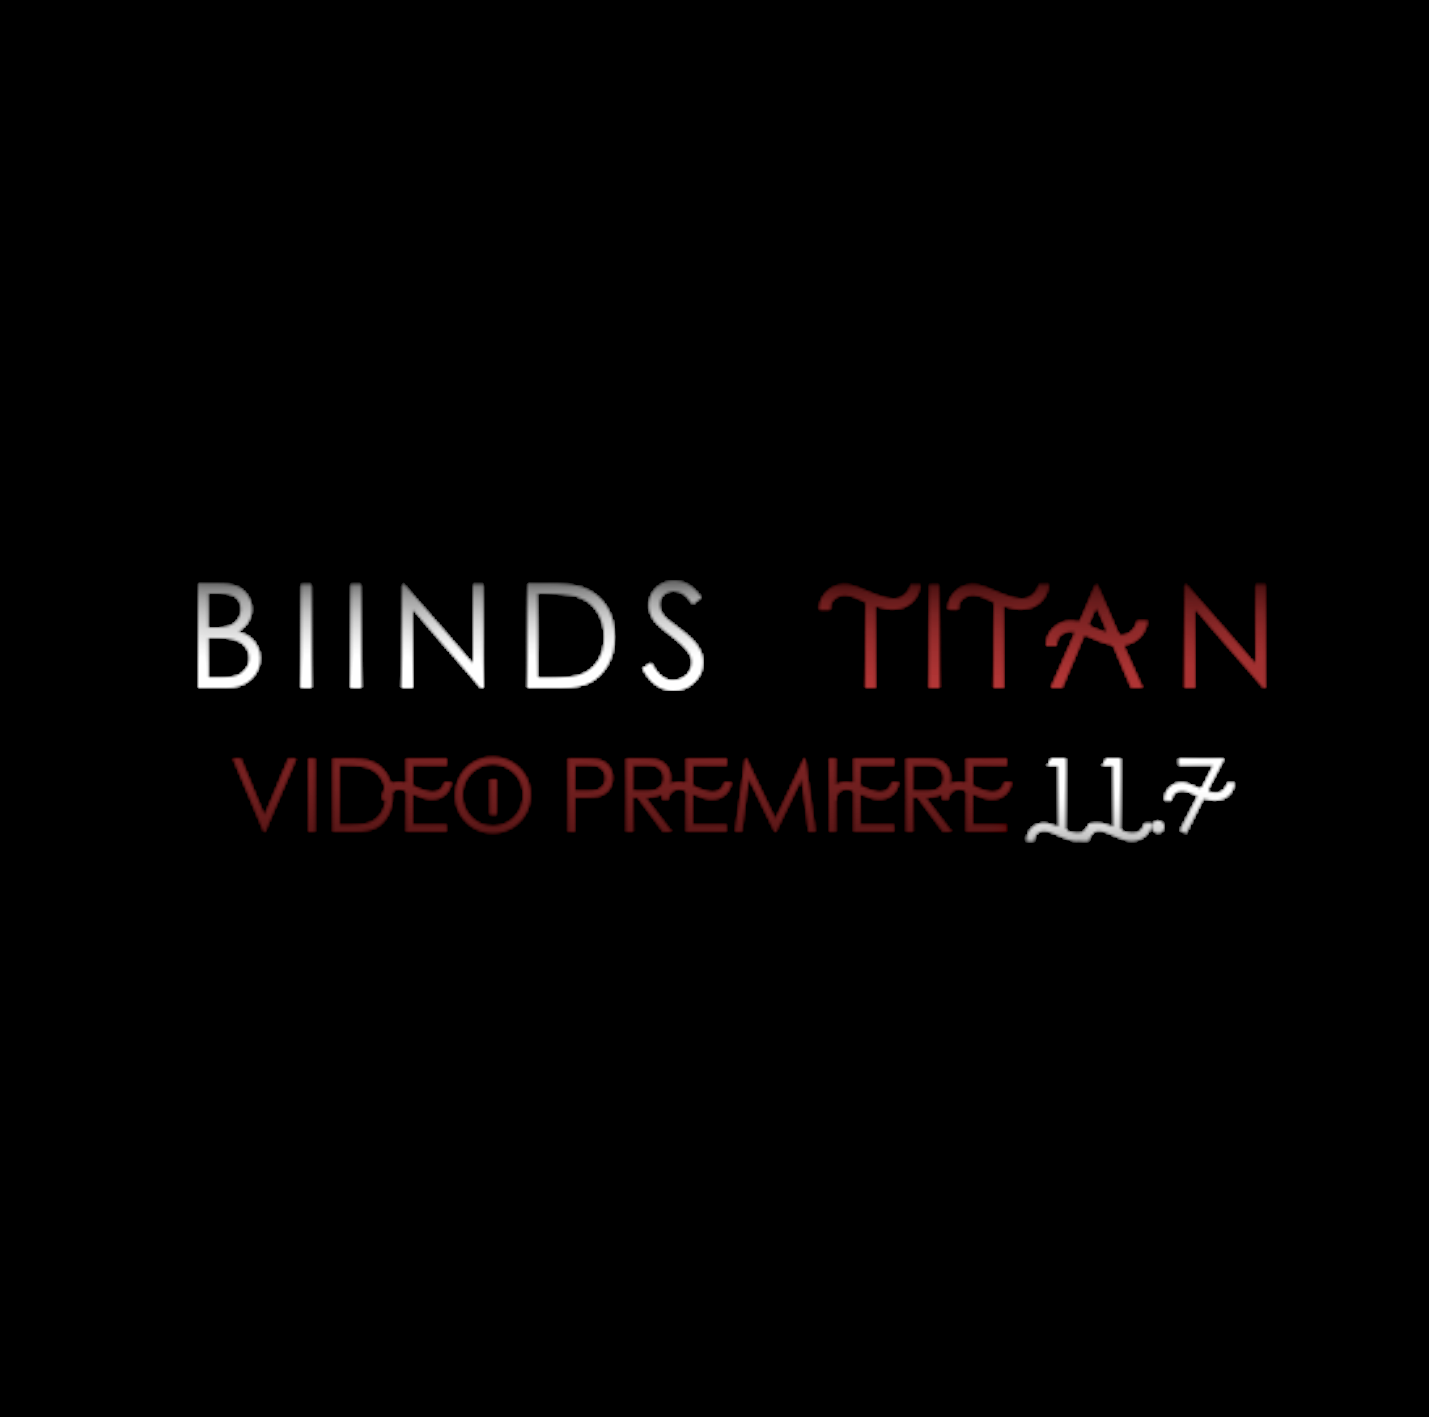 """BIINDS' new video for """"TITAN"""" will be released July 11"""